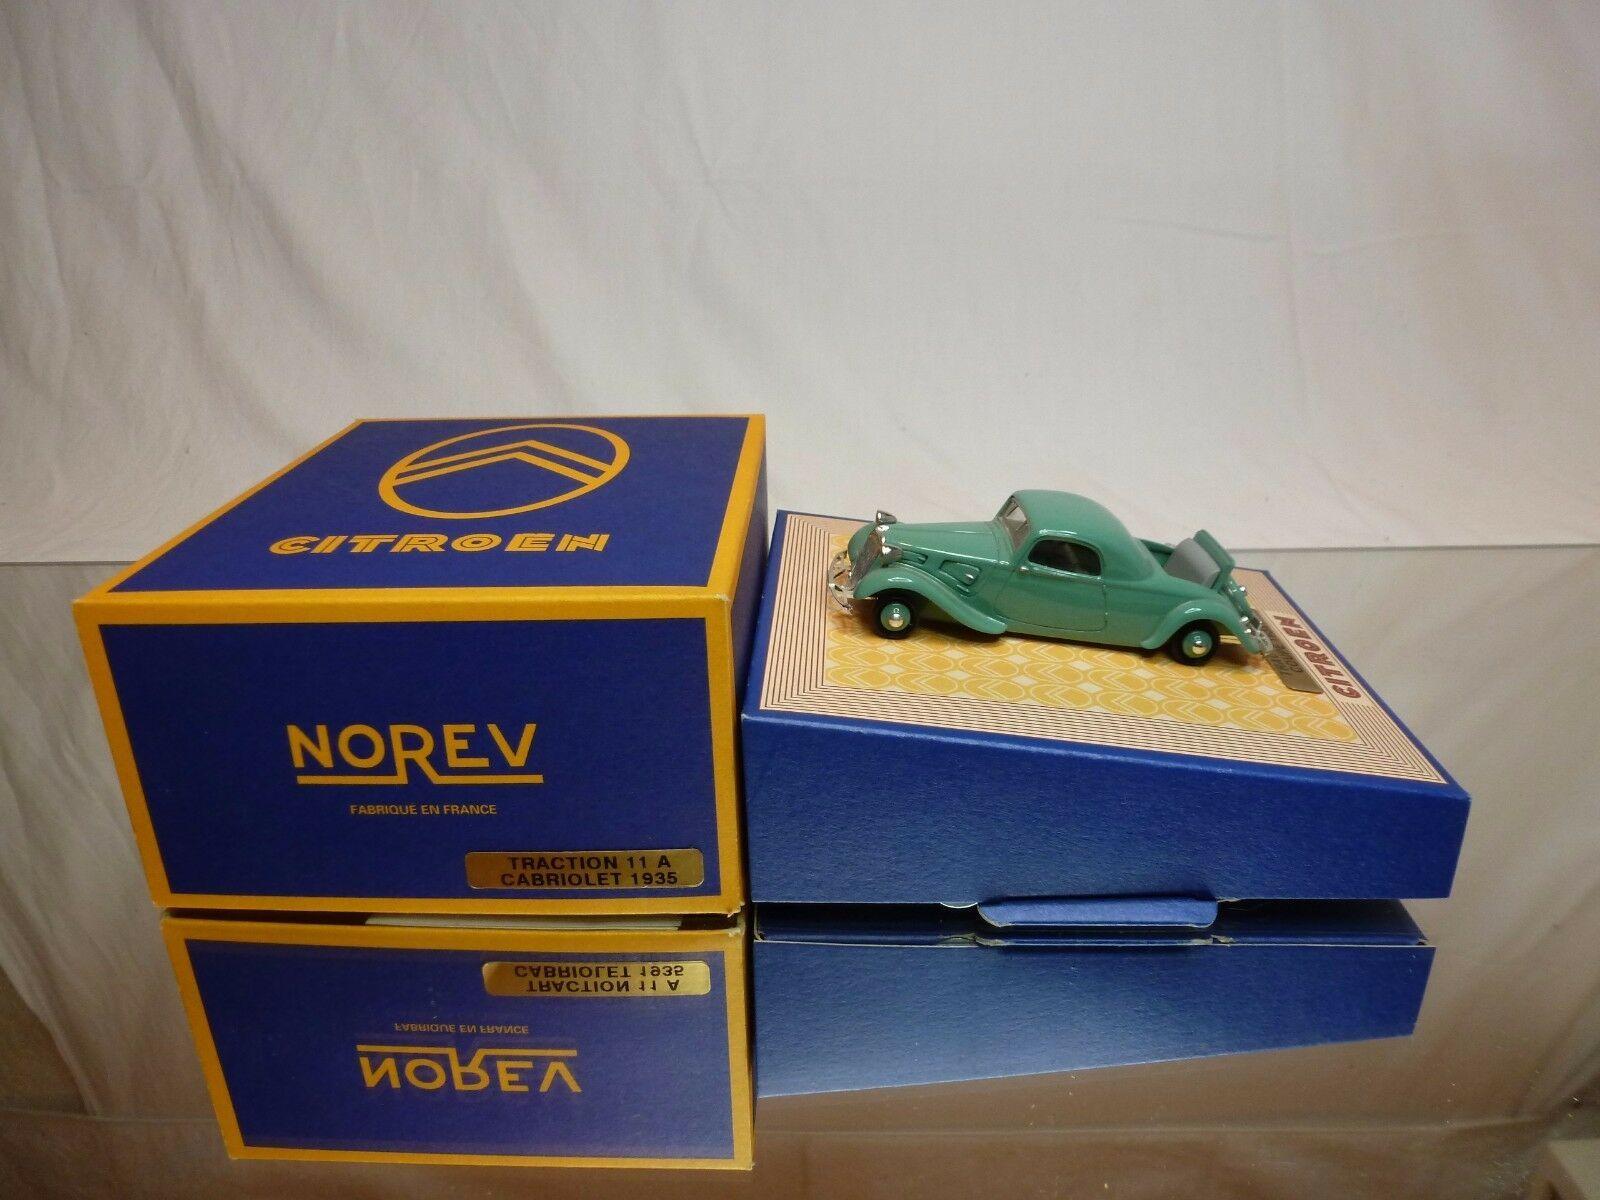 NOREV NOREV NOREV CITROEN 11A  COUPE 1935 -  verde 1 43 - EXCELLENT IN BOX ab1aea